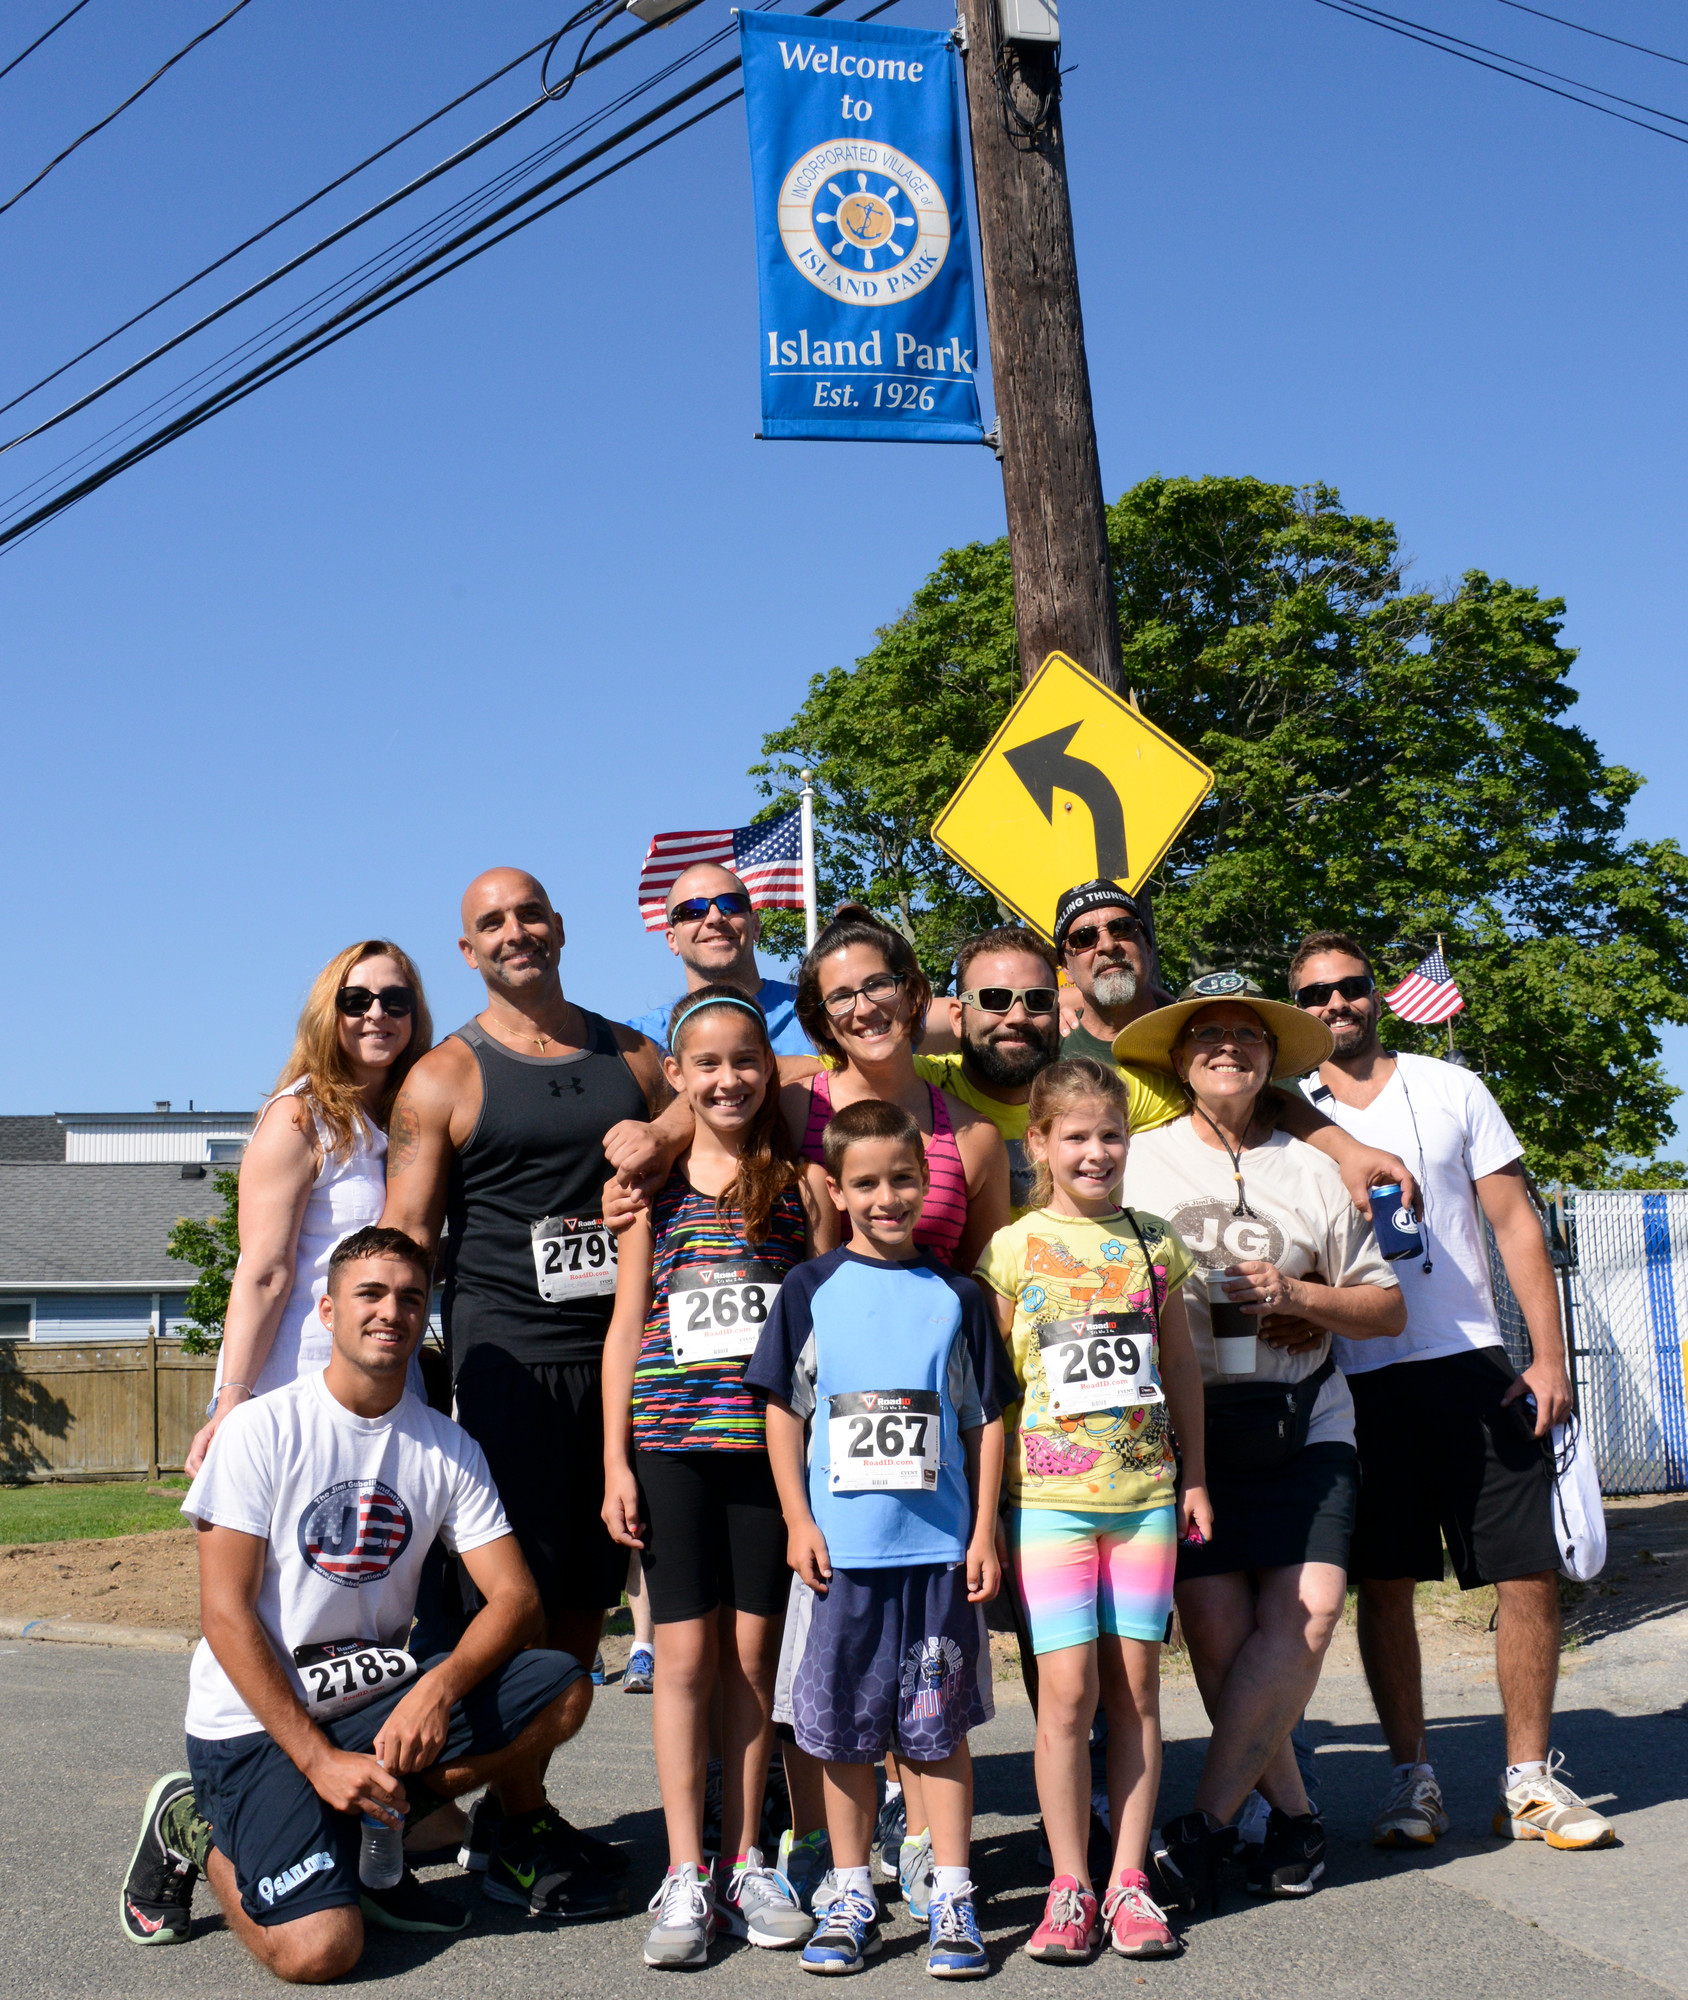 The Gubelli family at the 5k in Island Park.